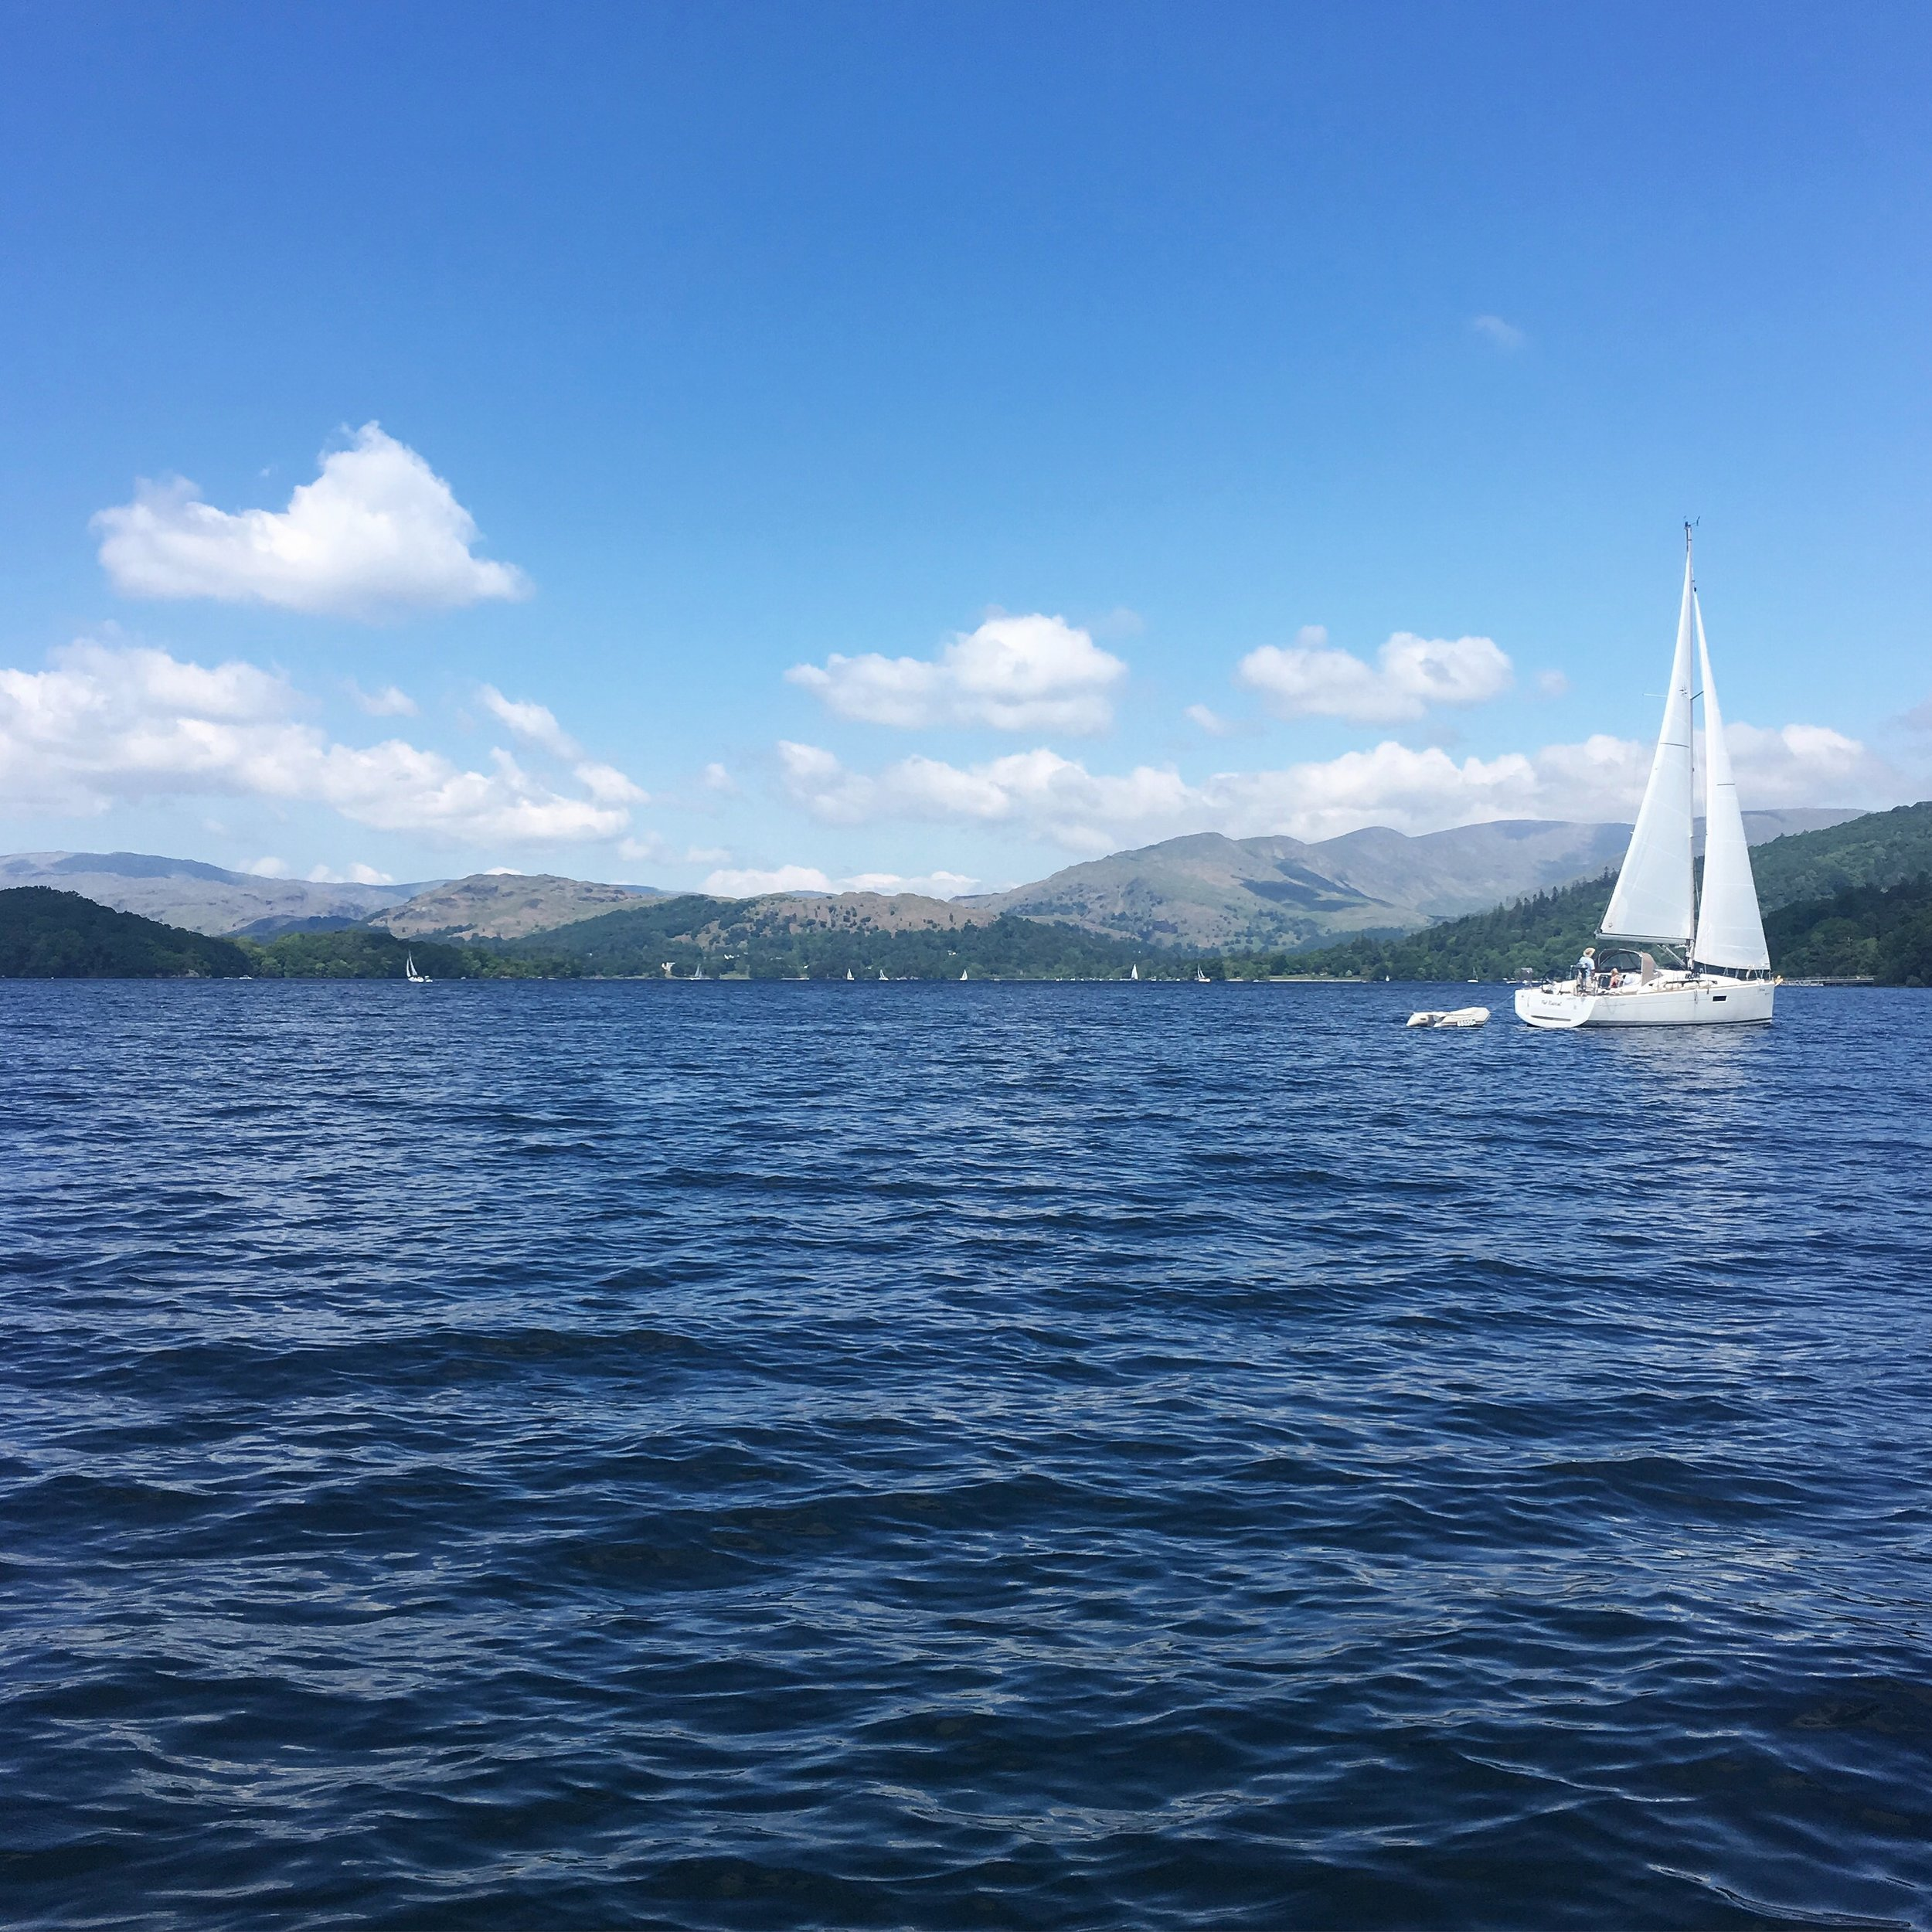 Lozidaze_LakeDistrict_Windermere_01